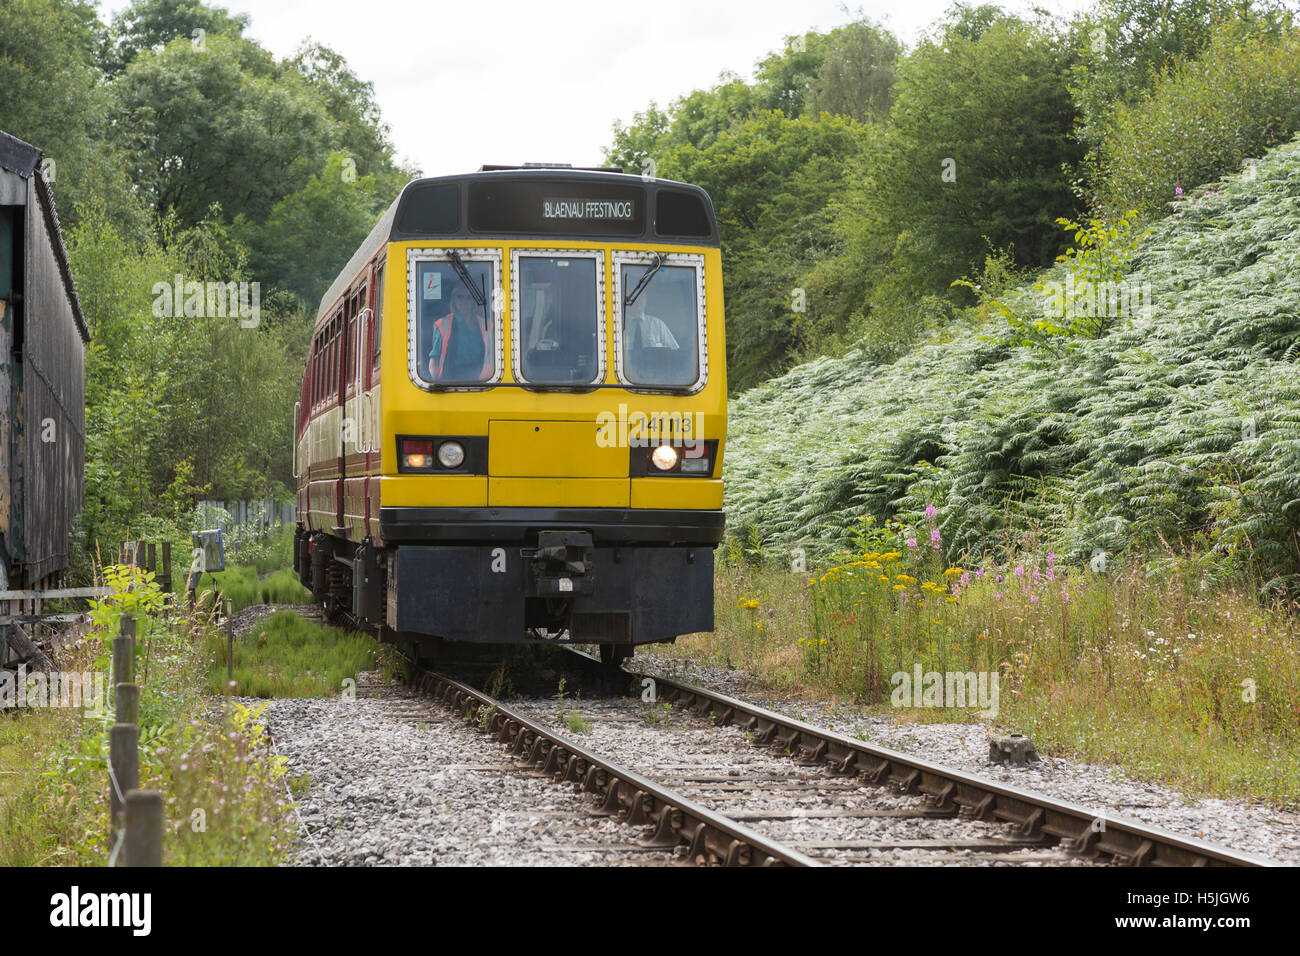 British Rail Class 141 diesel railcar, approaching Swanwick Junction, run by the Midland Railway Centre - Stock Image